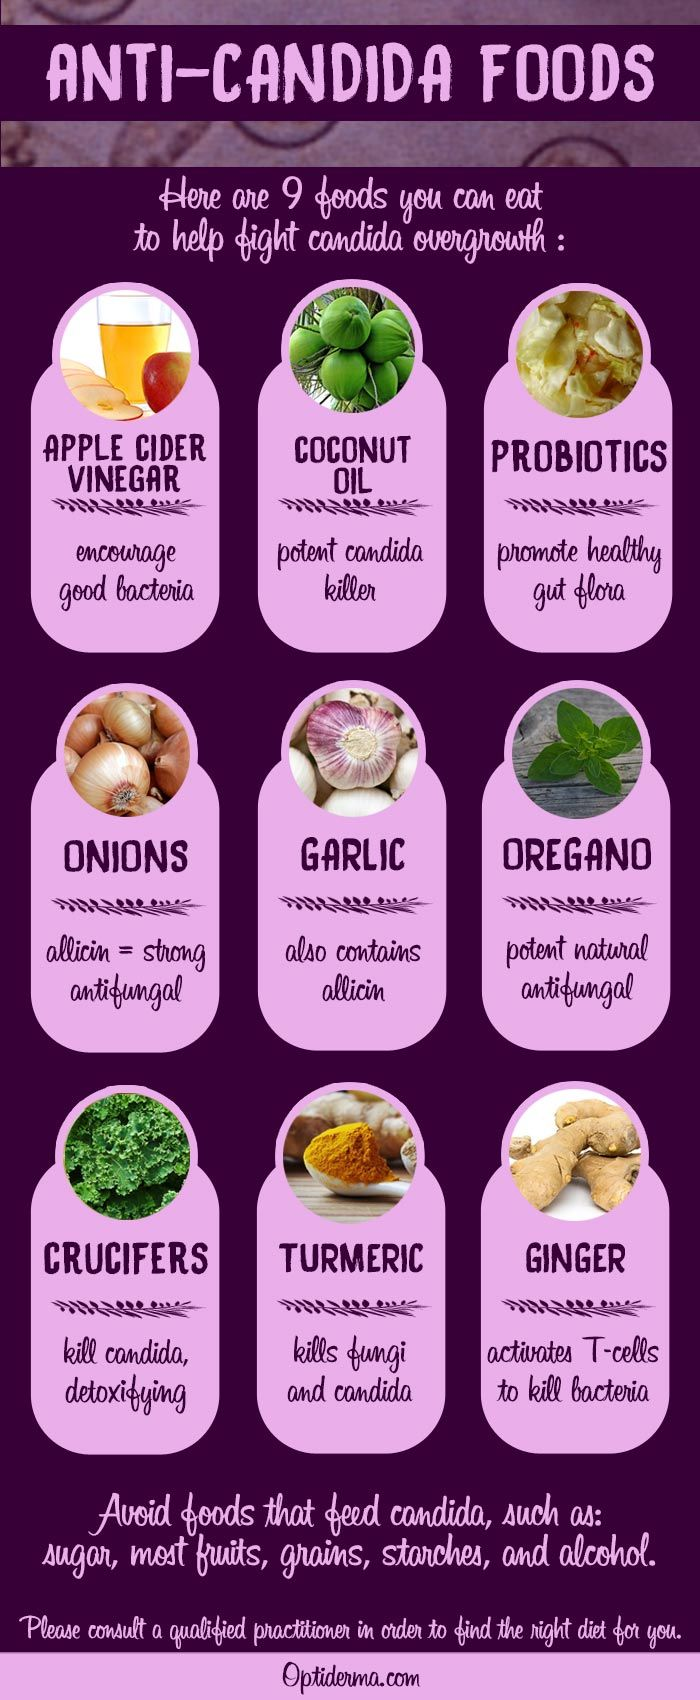 Here are the best foods to help fight candida overgrowth. Apple cider vinegar, coconut oil, onions, garlic, ginger, oregano have strong antifungal properties. Great foods to incorporate into your anti-candida diet, especially if you're prone to yeast infection! To learn more about antifungal foods and how to fight candida infection, read this post: